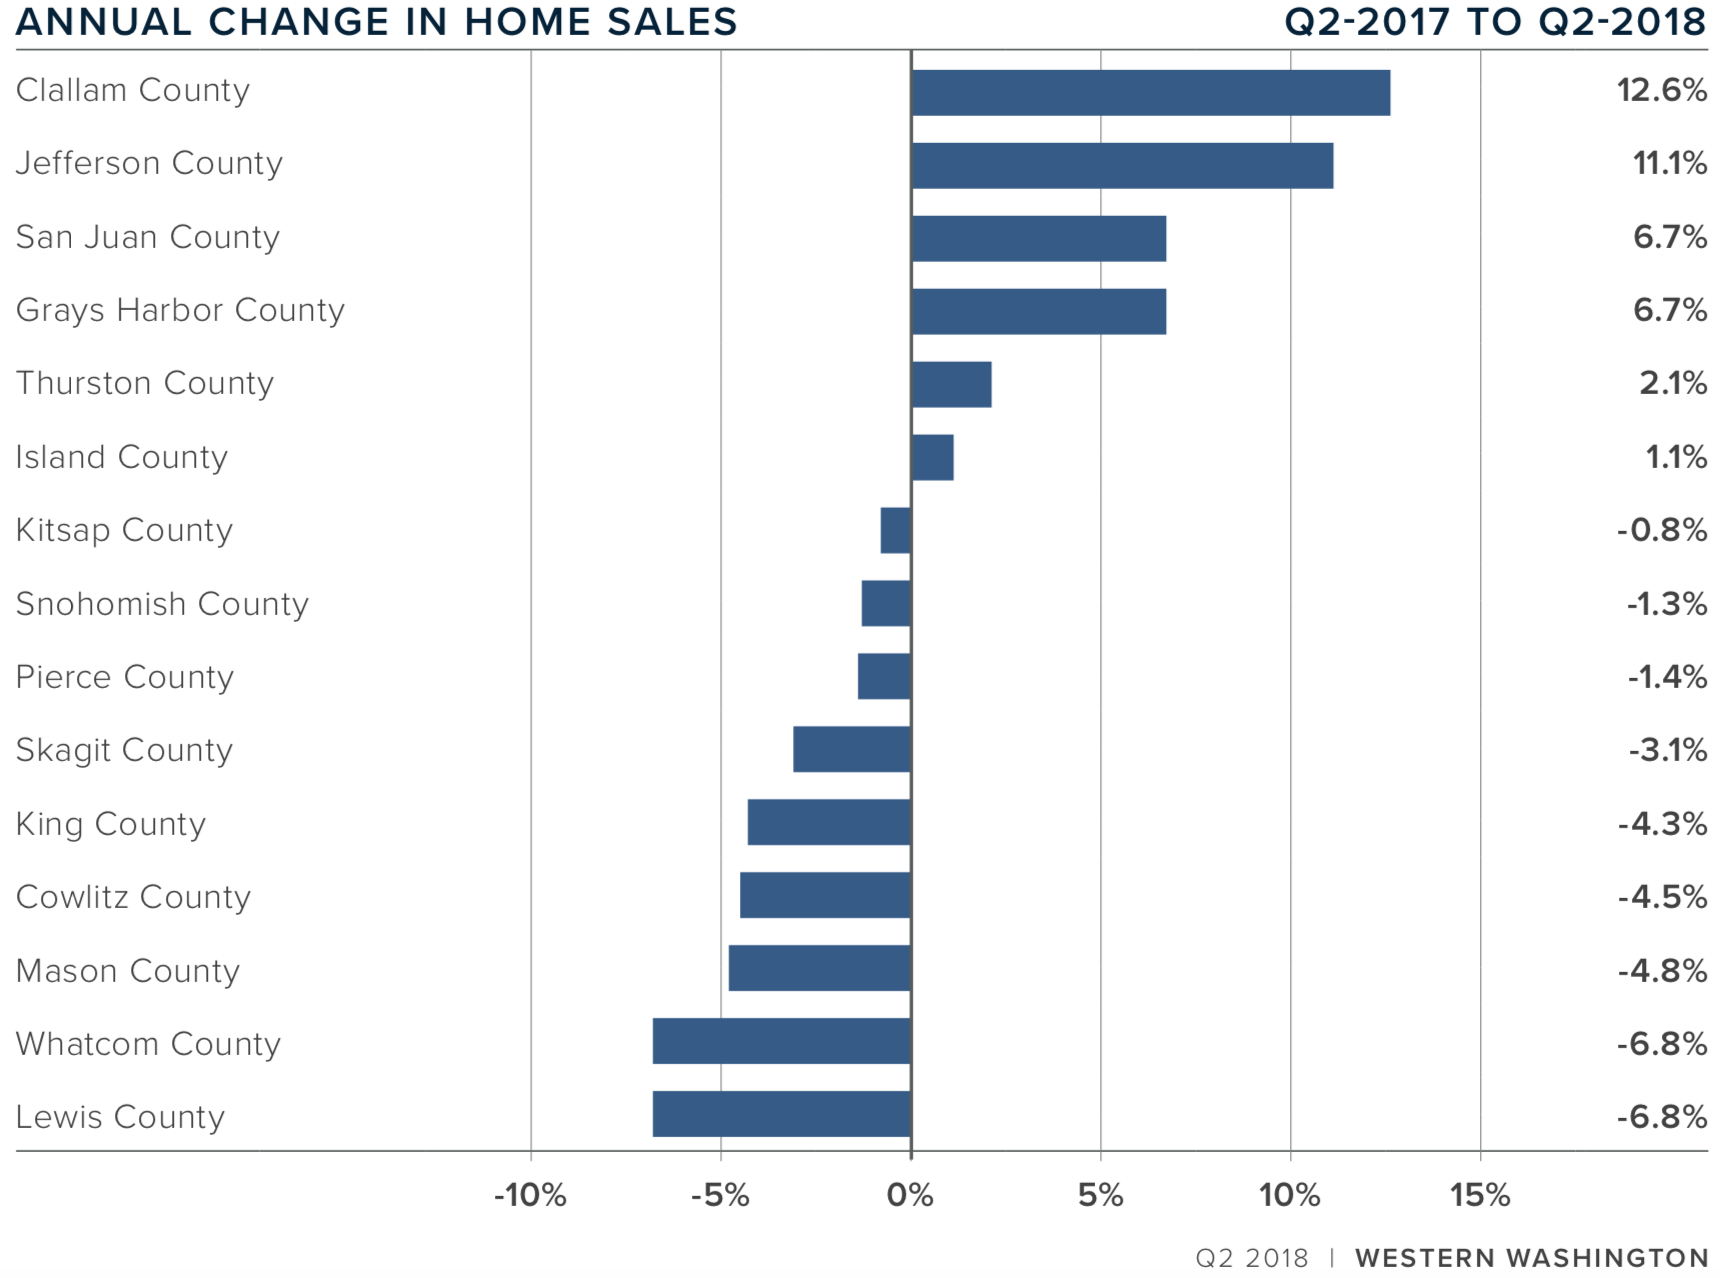 Western Washington Matthew Gardner Real Estate Market Update Q2 July 2018 Gina Madeya Annual Changes